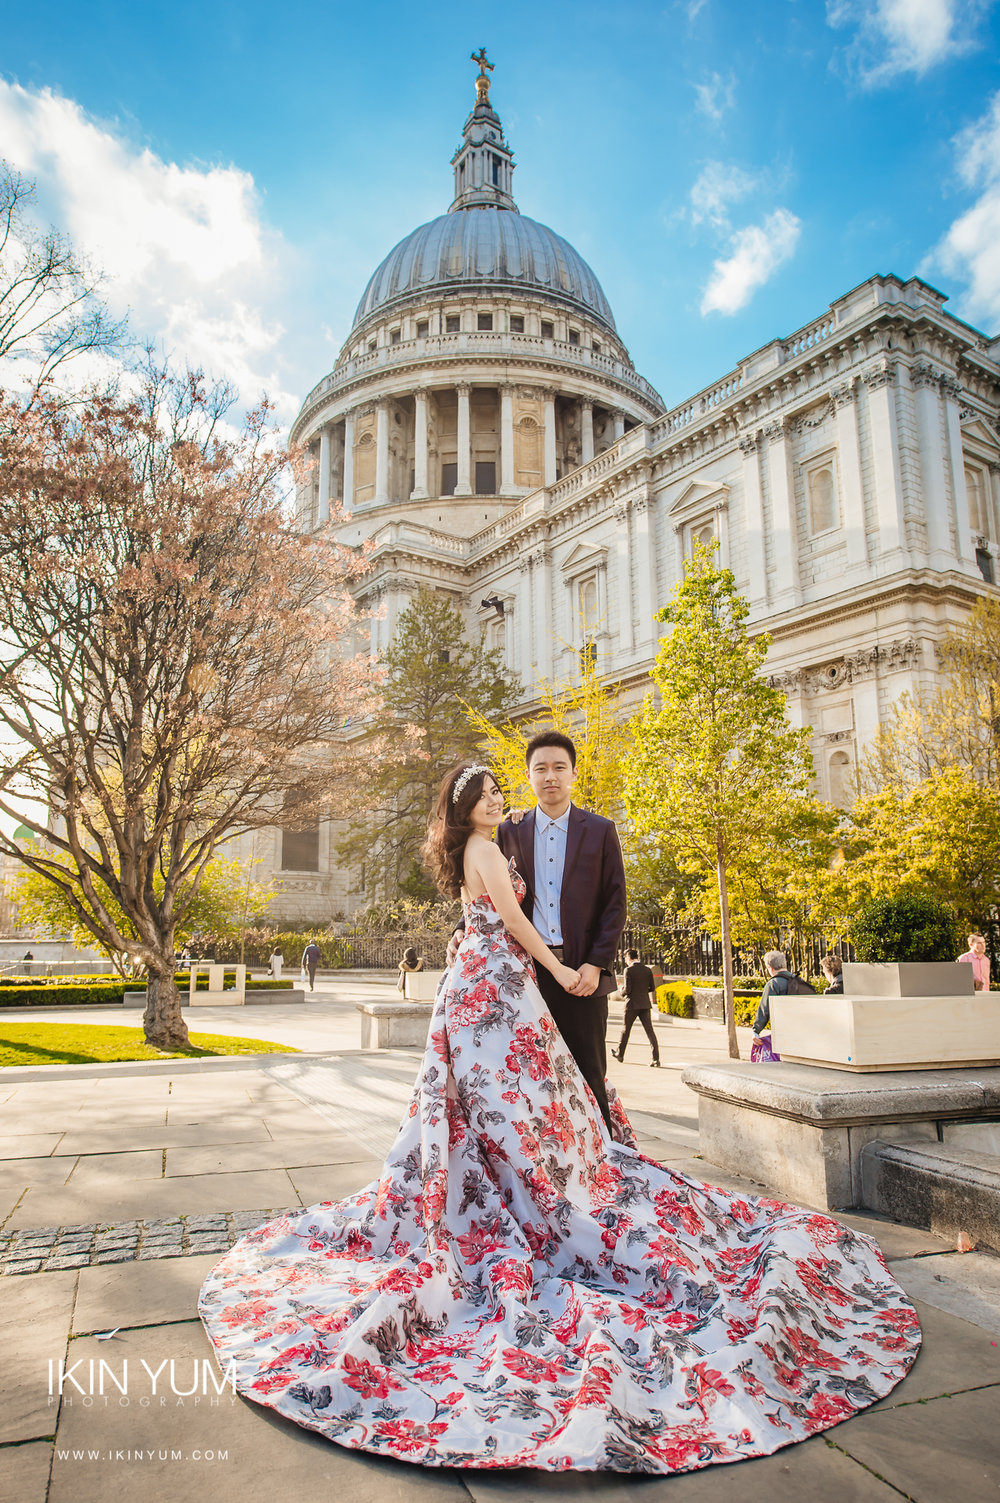 Pre-Wedding Shoot London Susan + Alvin - Ikin Yum Photography-011.jpg